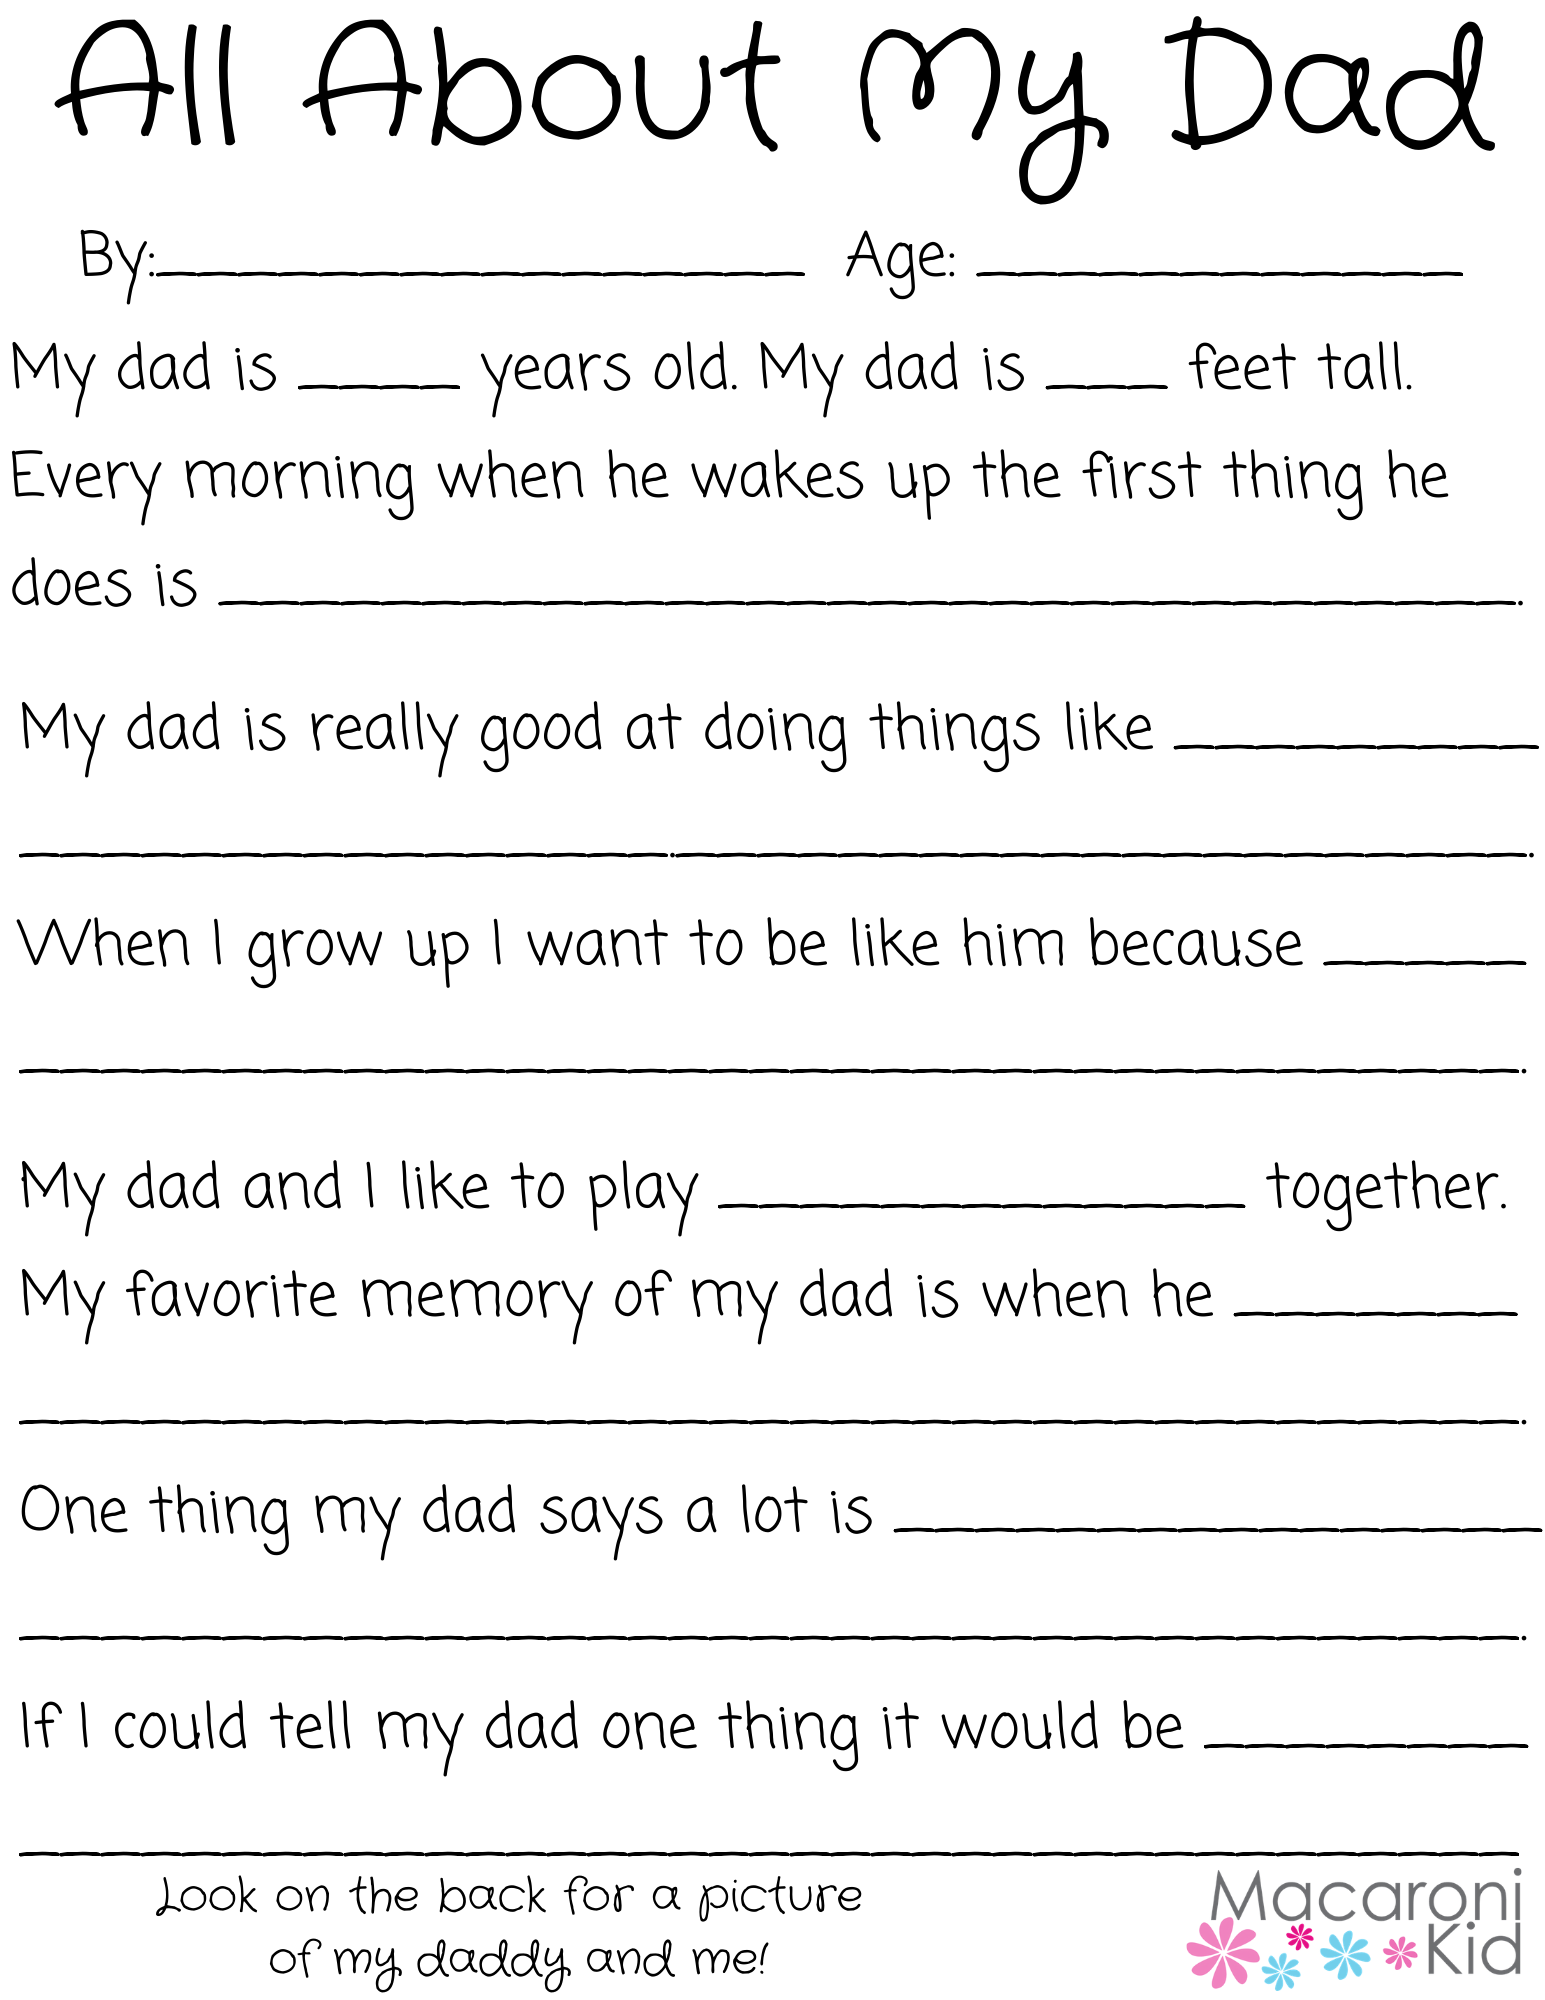 All About My Dad A Father S Day Questionnaire And Free Printable Macaroni Kid Erie